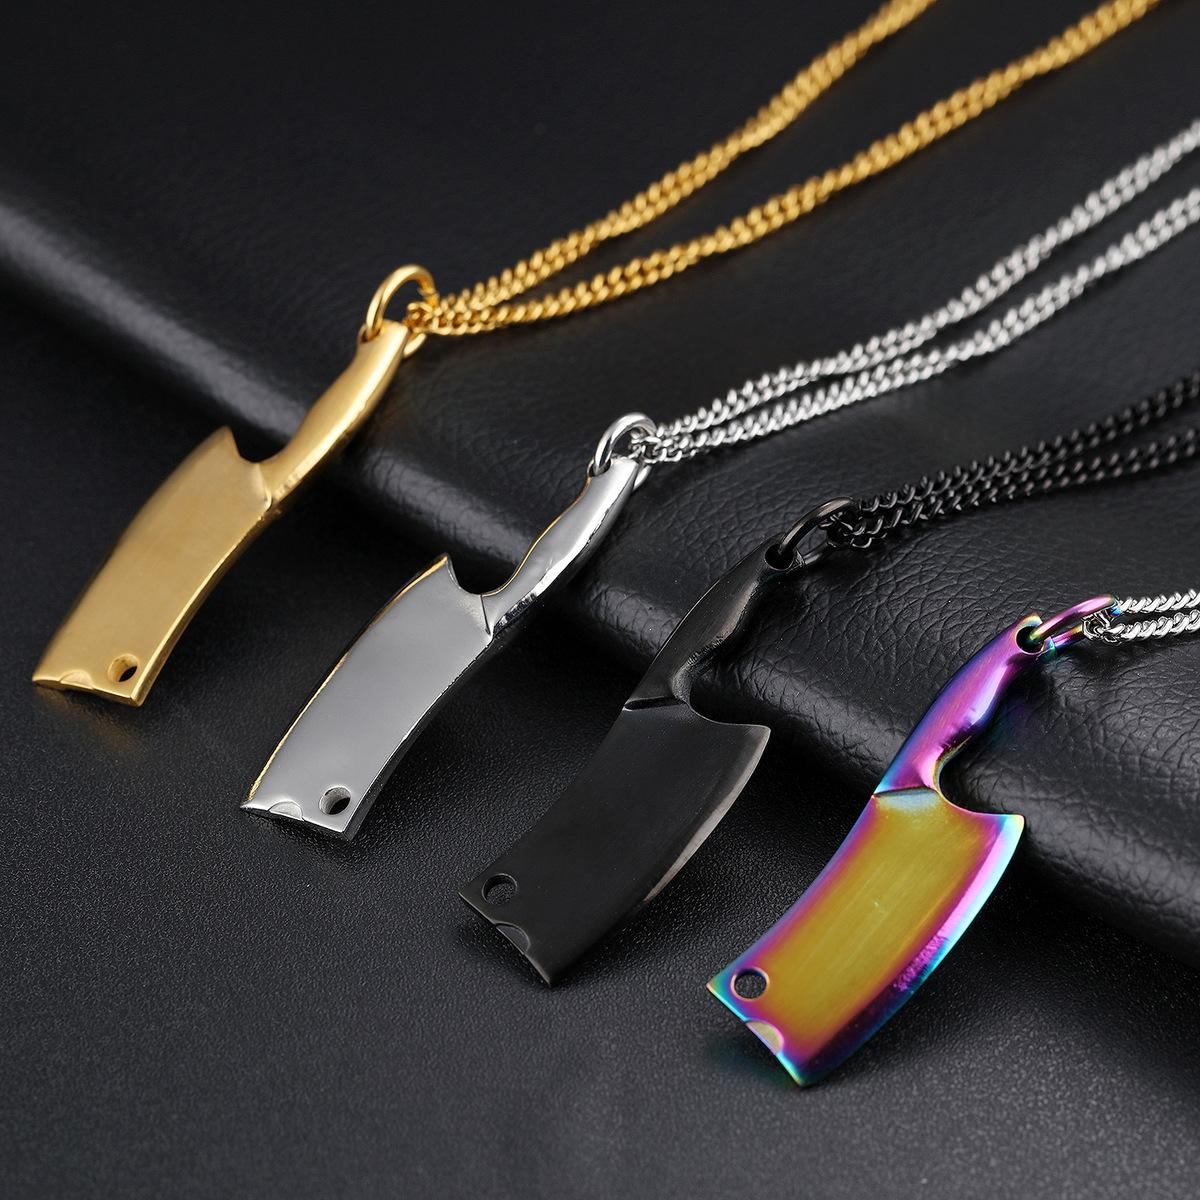 4 Colors Stainless Steel Kitchen Knife Pendant Necklace - Mens Necklaces Hip Hop Jewelry - Fashion Designer Necklace Punk Rock Gift